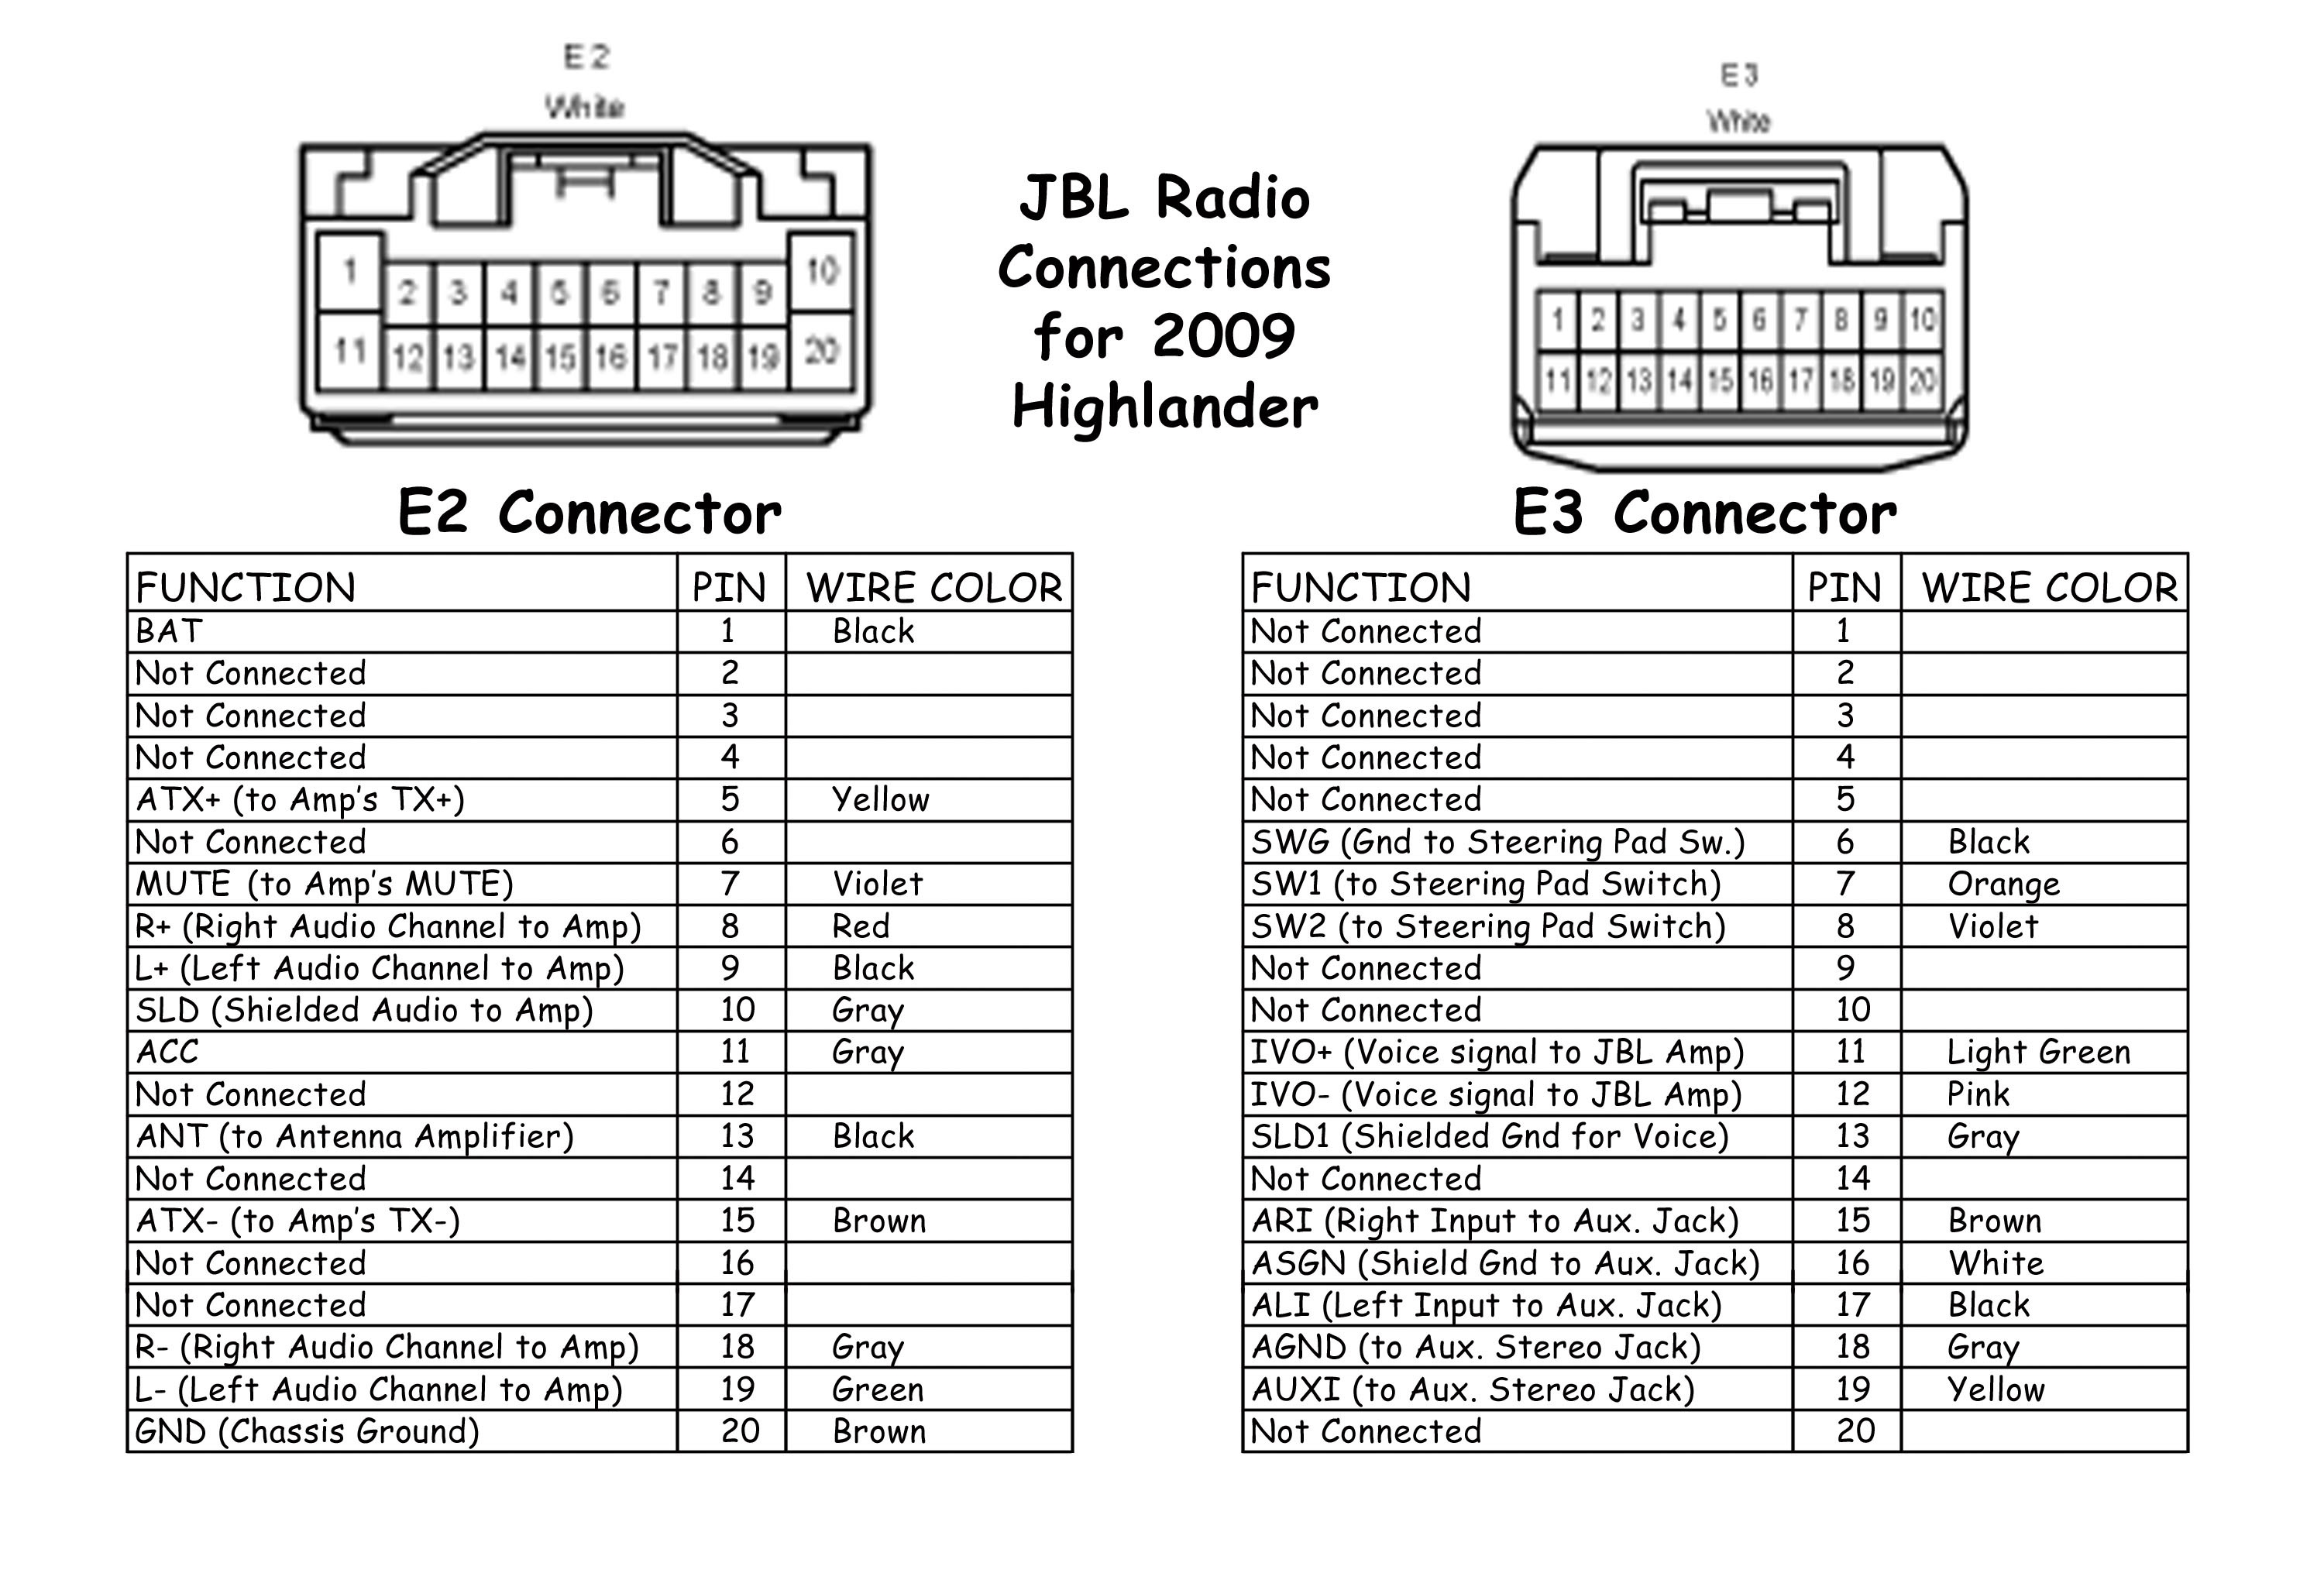 2009 toyota camry radio wiring diagram Collection-Peugeot 206 Radio Wiring Diagram Colours Simple Toyota Camry Radio Wiring Diagram Help Stereo Wiring Colours 1992 4-f